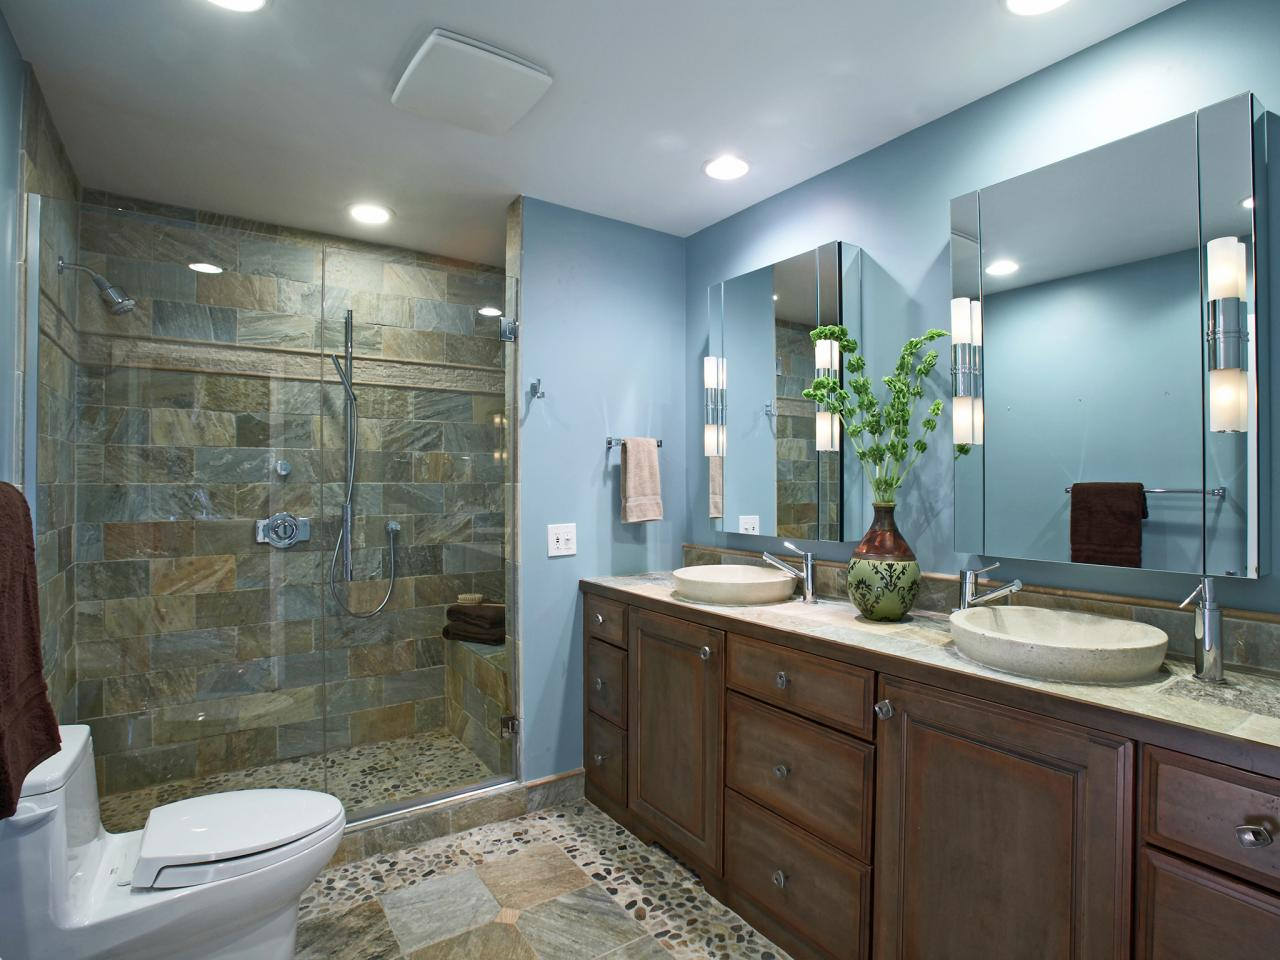 Smart bathroom lights 1